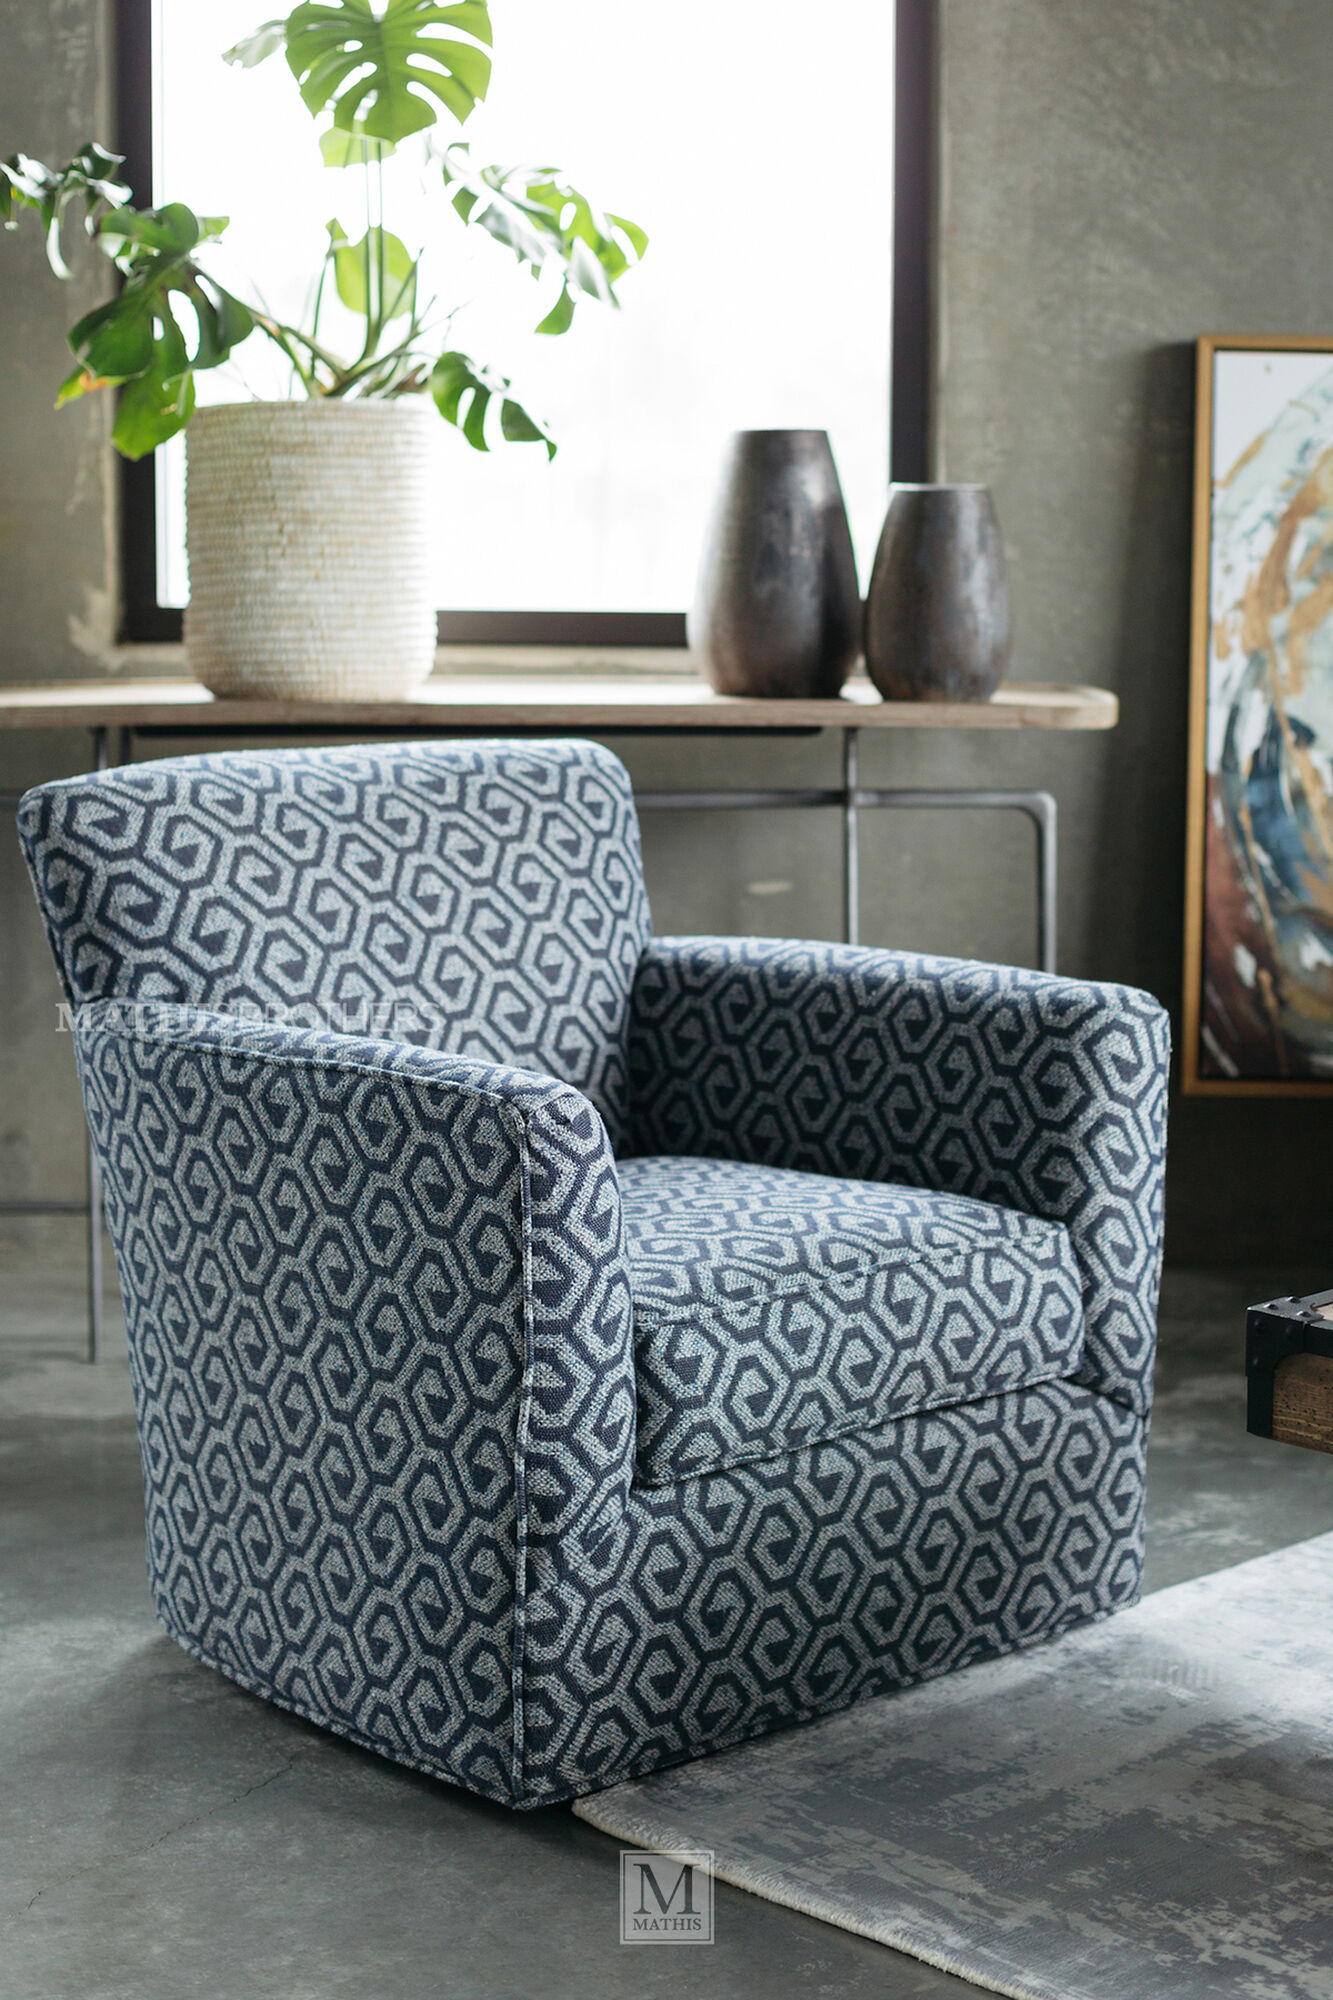 Geometric Patterned Contemporary 34 Quot Swivel Chair In Gray